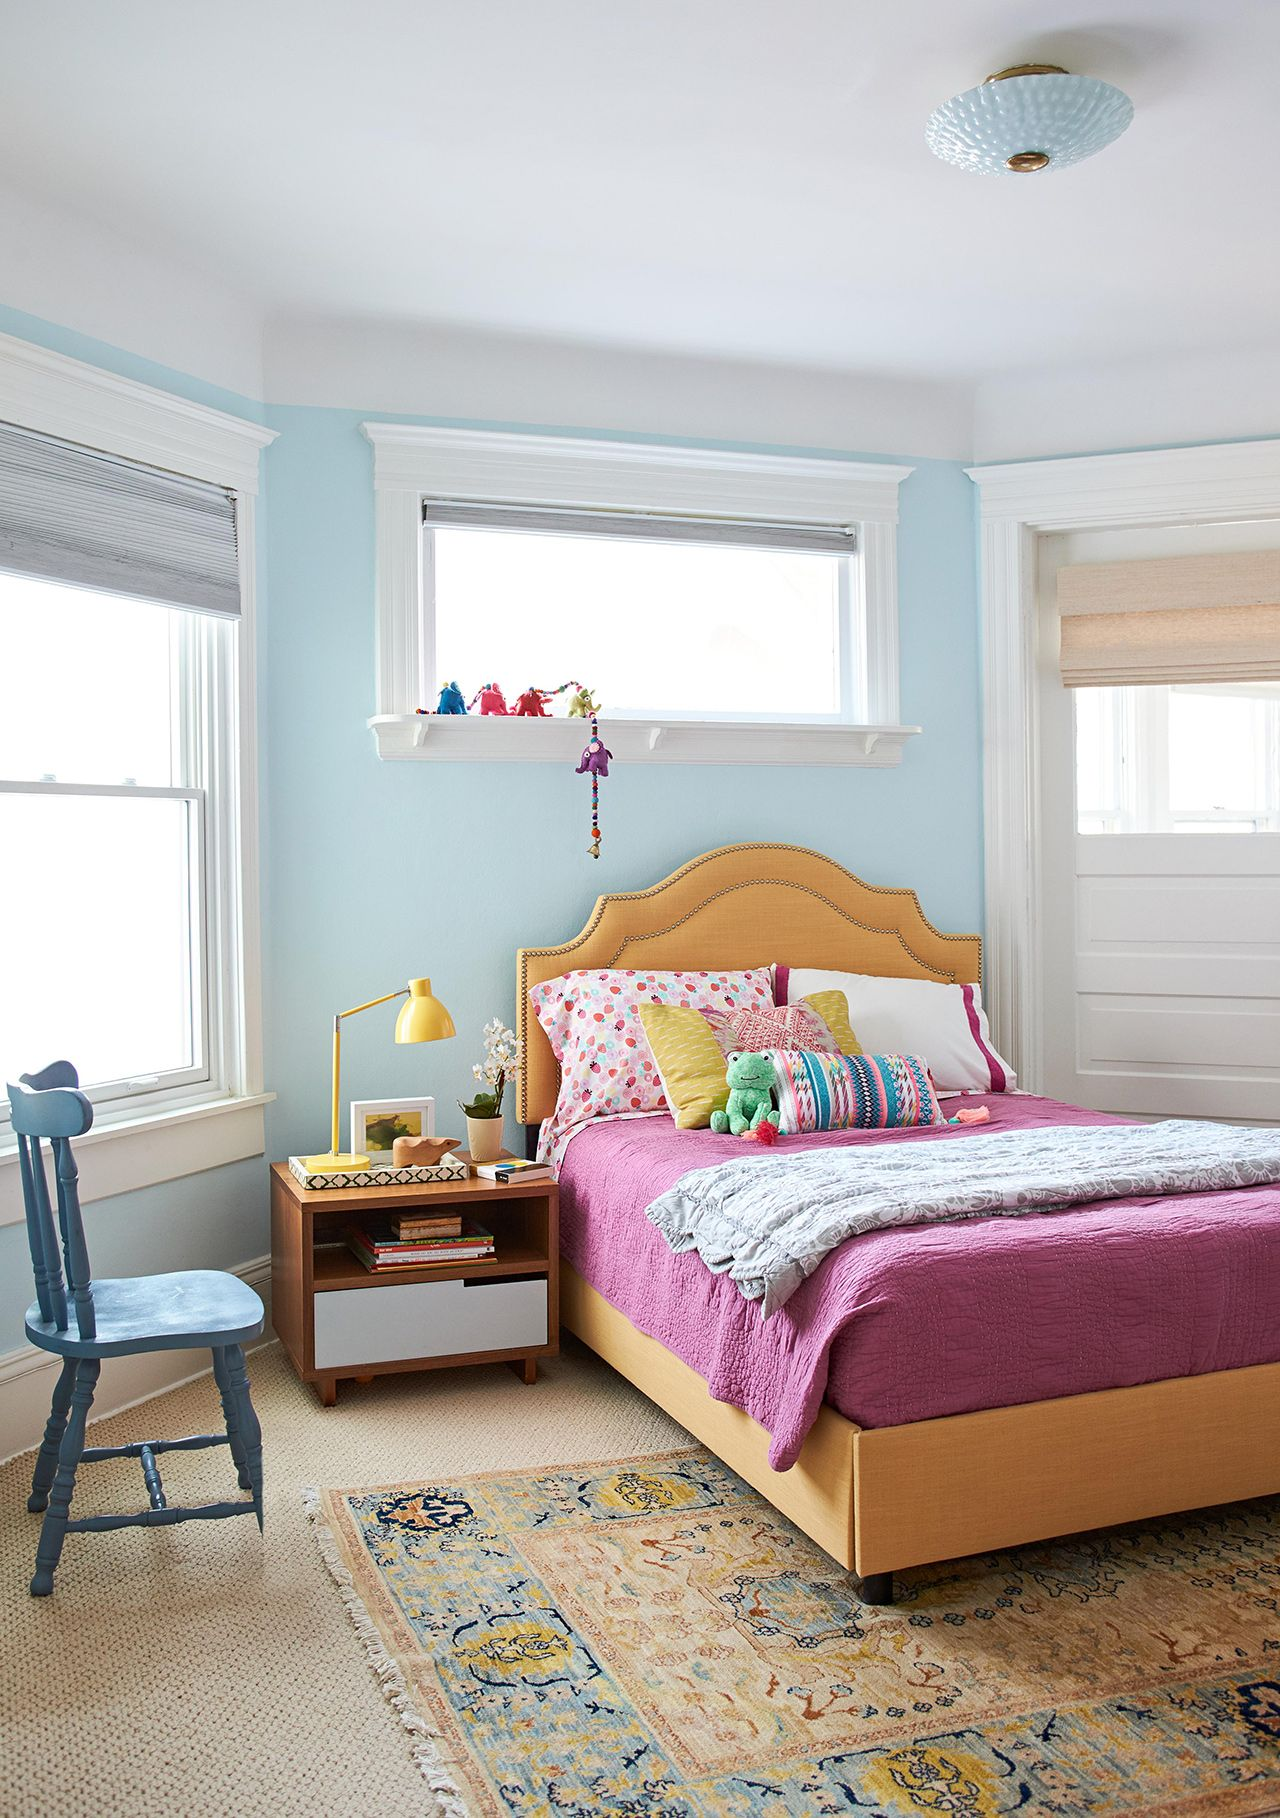 6 Tips For Creating A Room Your Kids Will Grow Into And Love